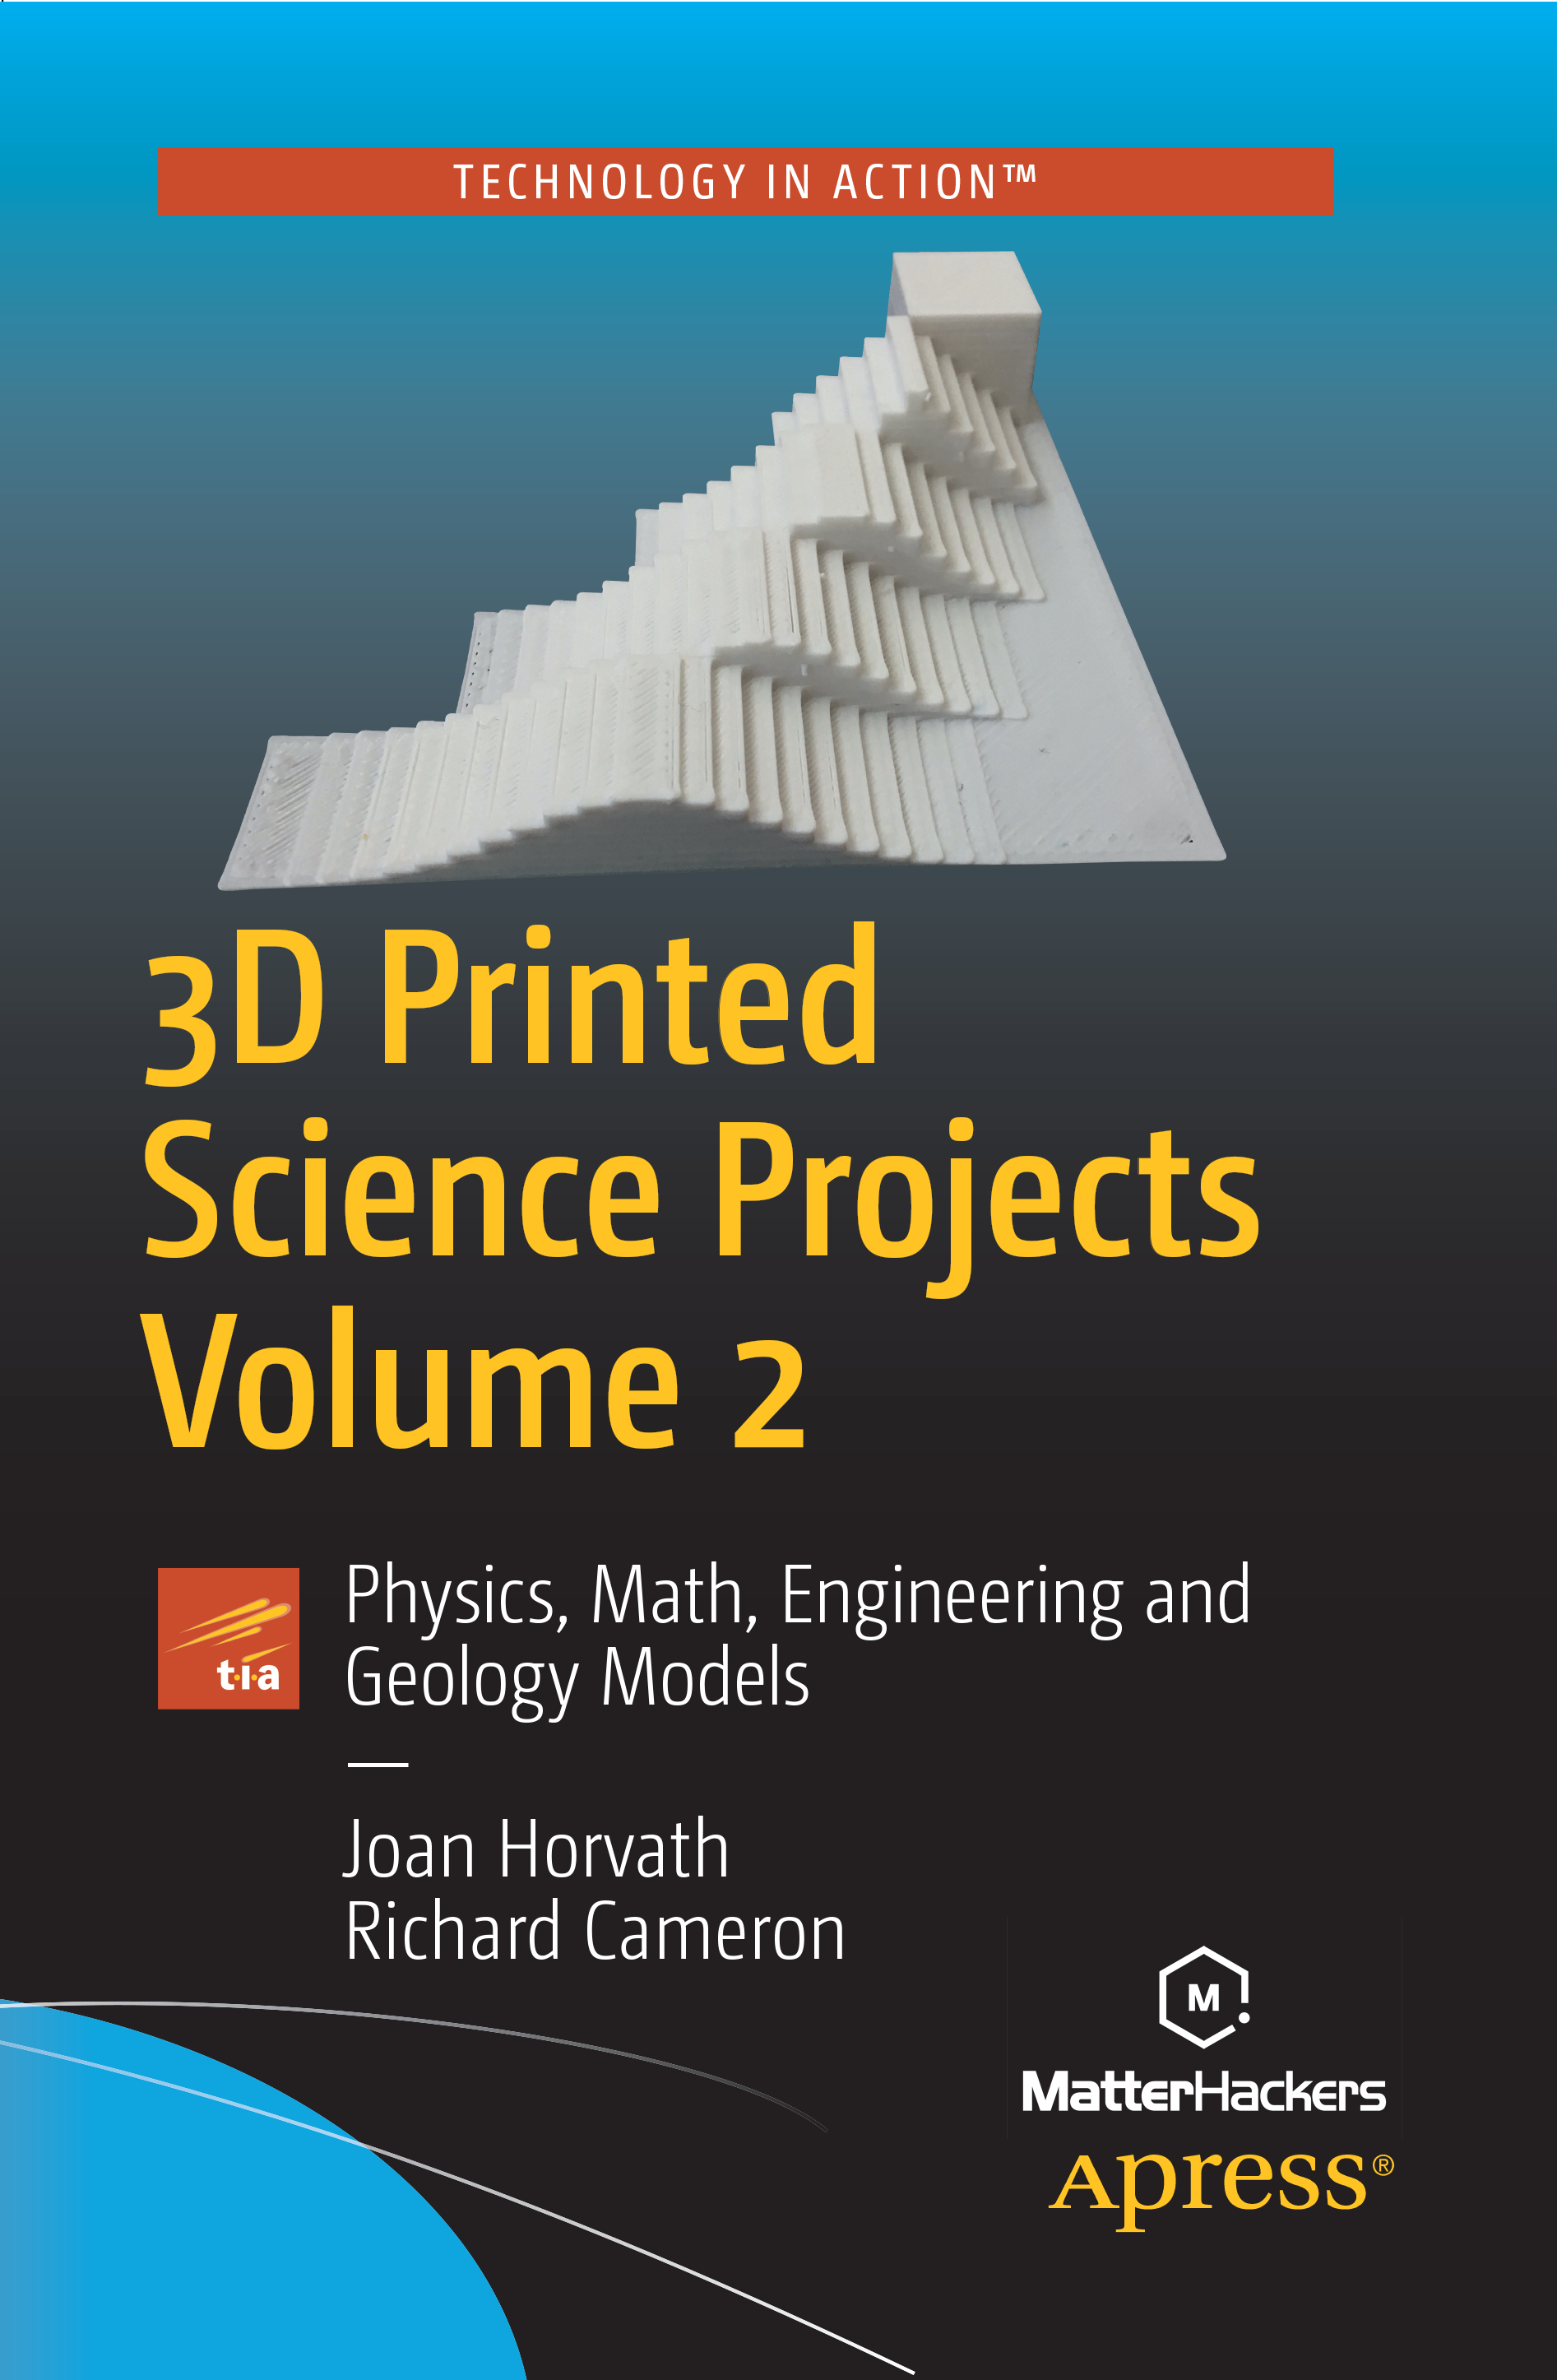 3D Printed Science Projects Volume 2  (Apress, 2017)